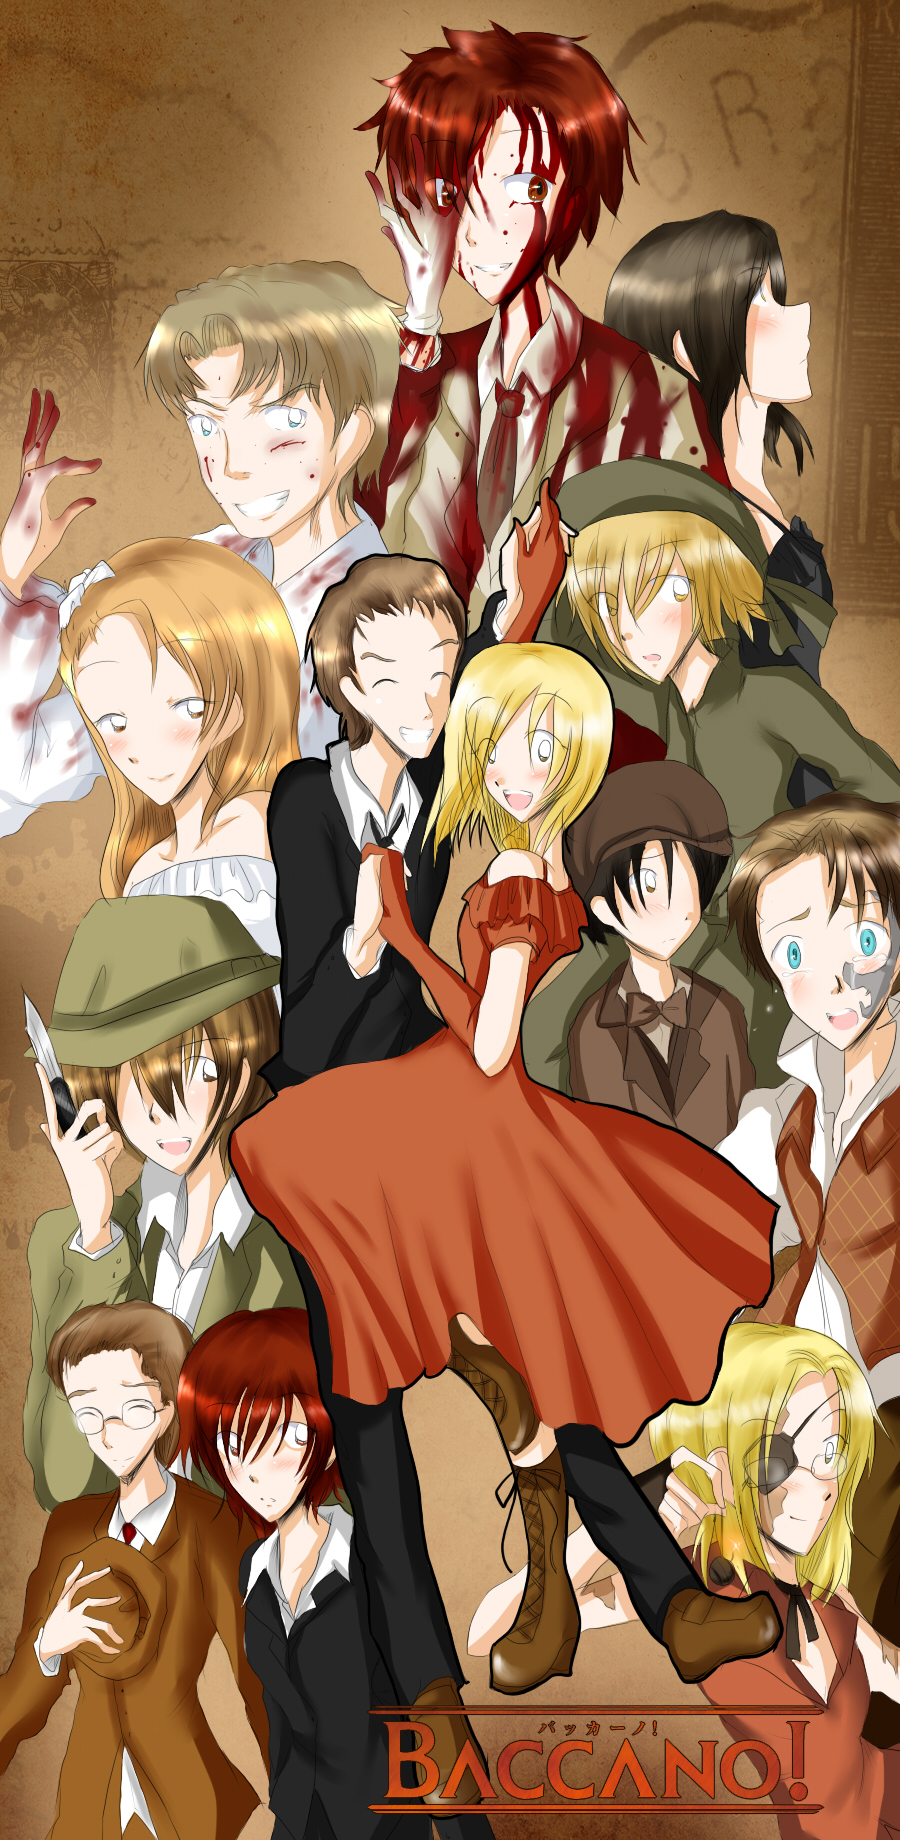 Baccano in Manhattan by HimitsuNotebook on DeviantArt